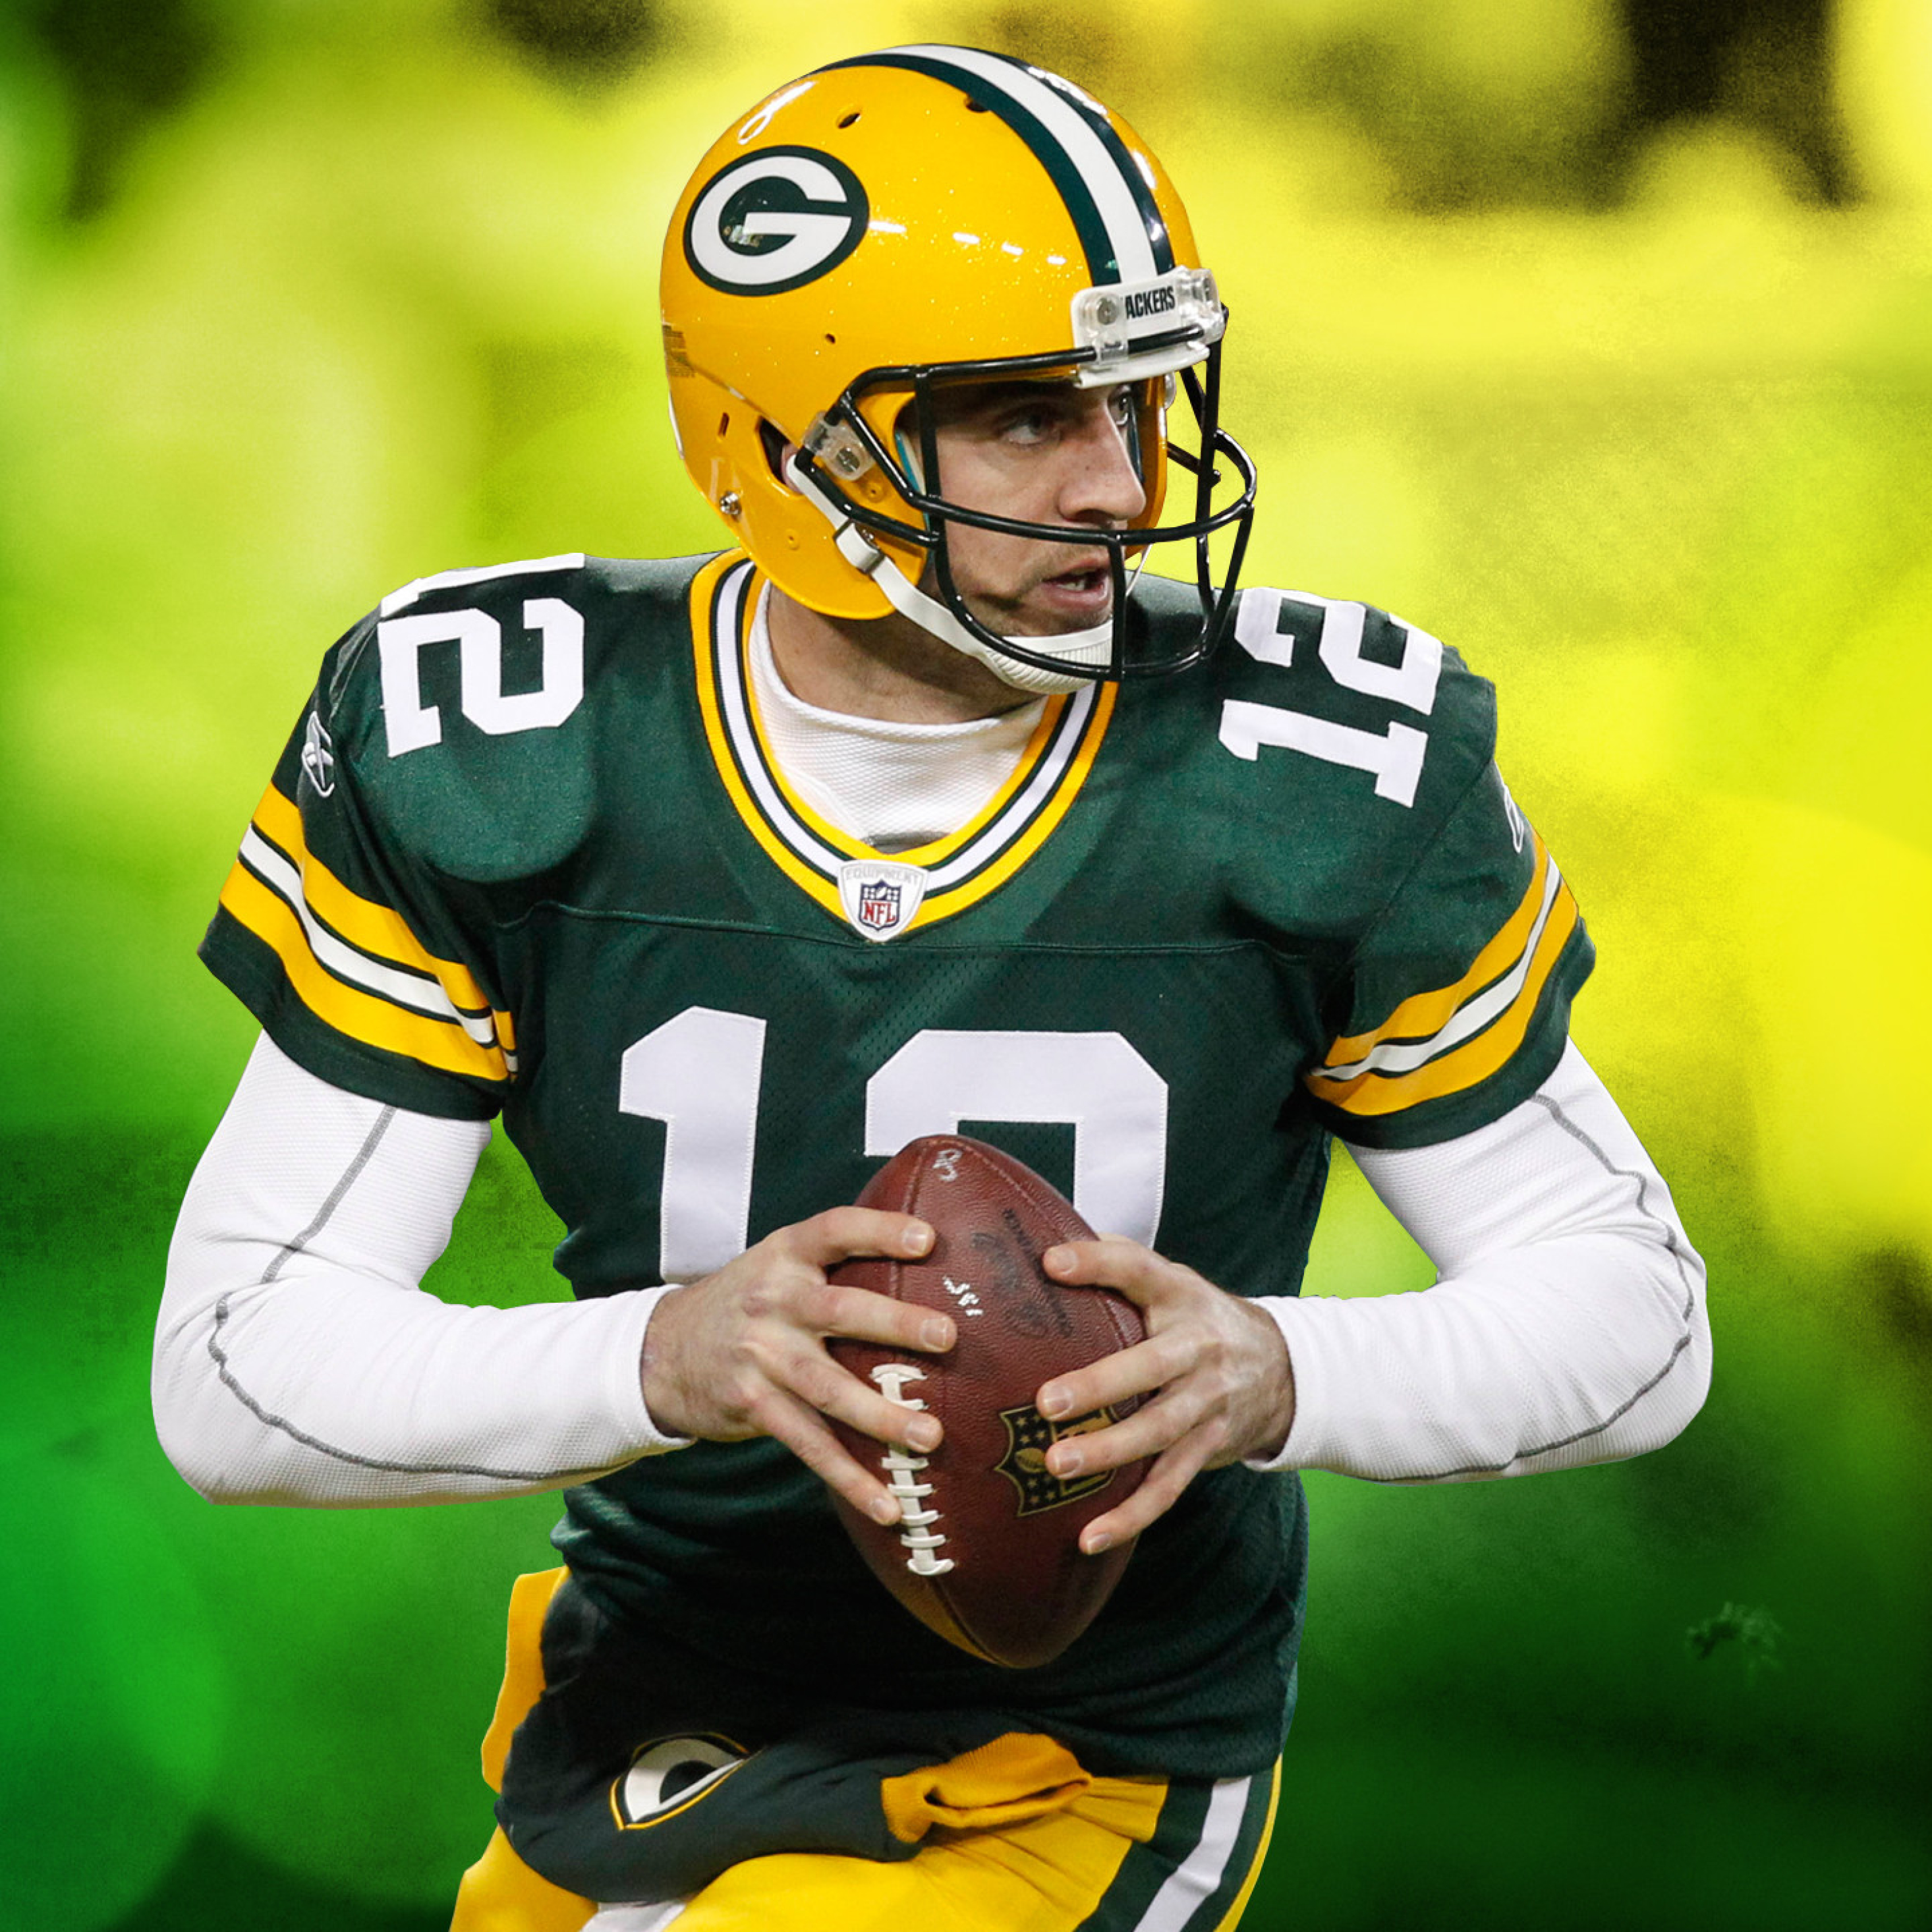 2932x2932 Aaron Rodgers Green Bay Packers Green Bay Ipad Pro